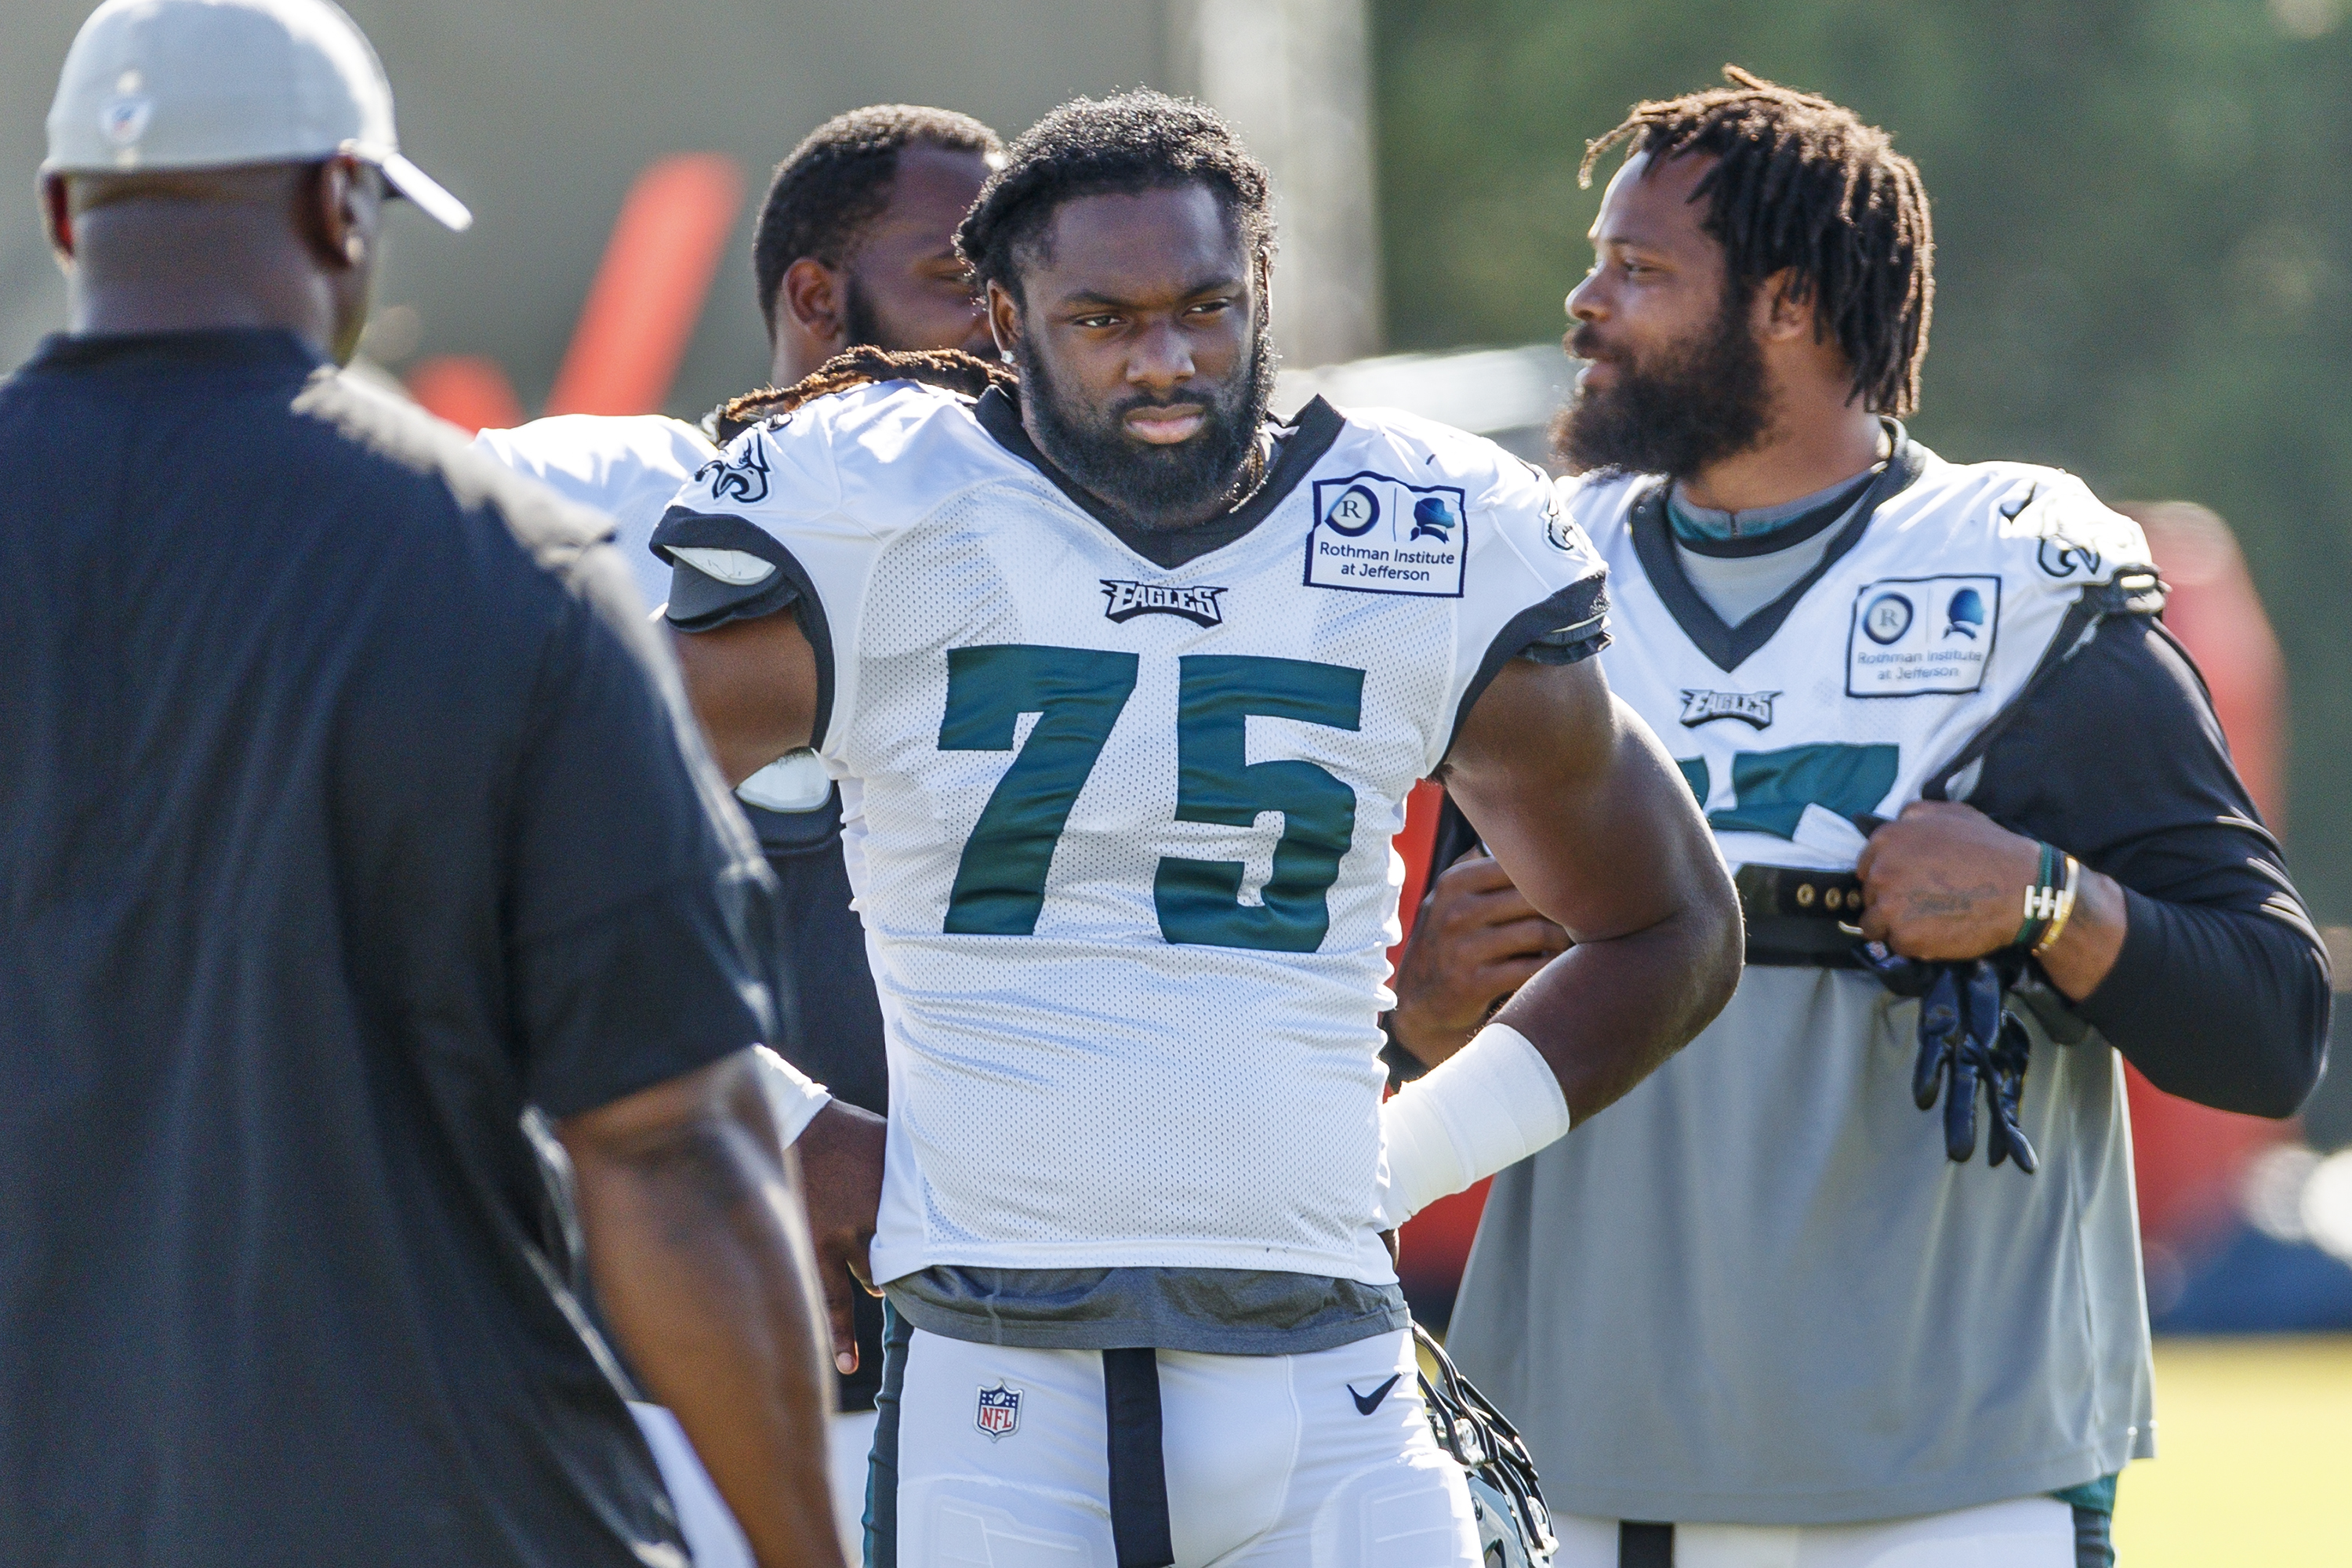 Josh Sweat (center) listens to his coach as Michael Bennett (right) and Fletcher Cox chat before practice on Thursday.